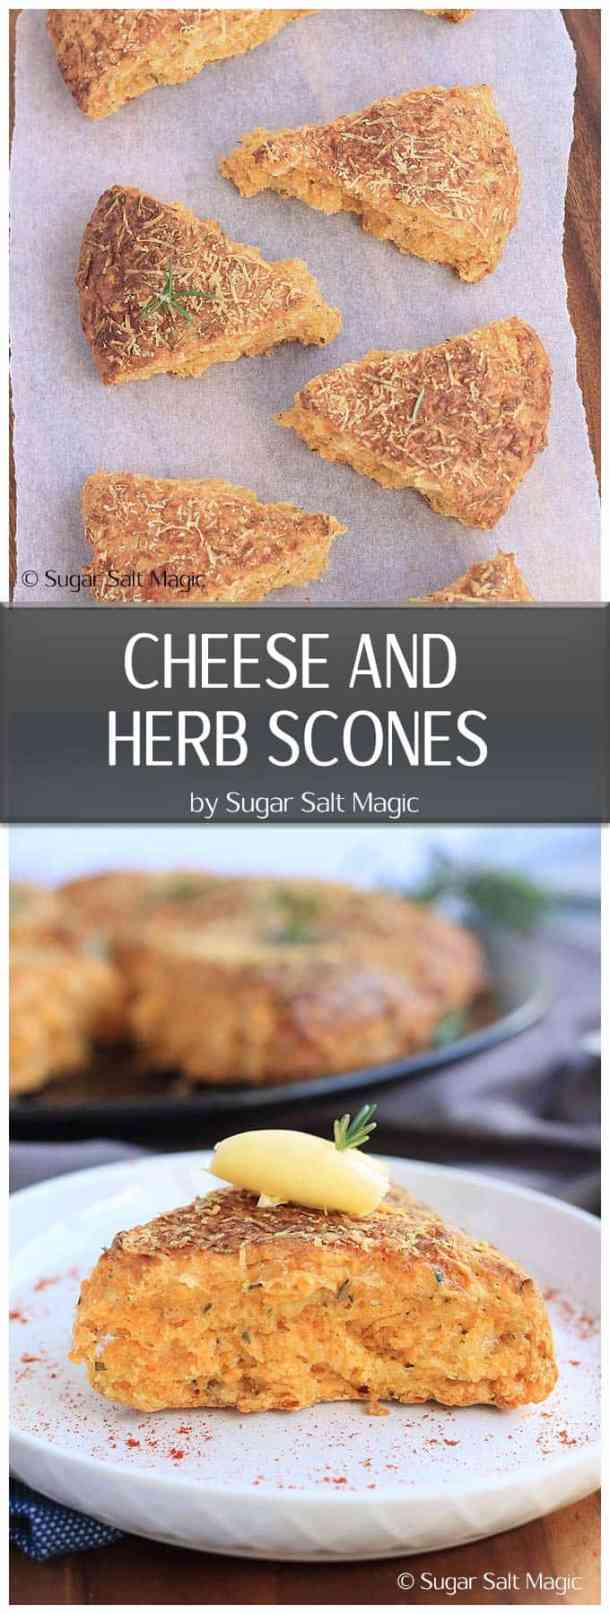 These Cheese and Herb Scones, filled with cheddar and rosemary are a great twist on a classic simple scone recipe. A great breakfast or brunch.  #scones #herbs